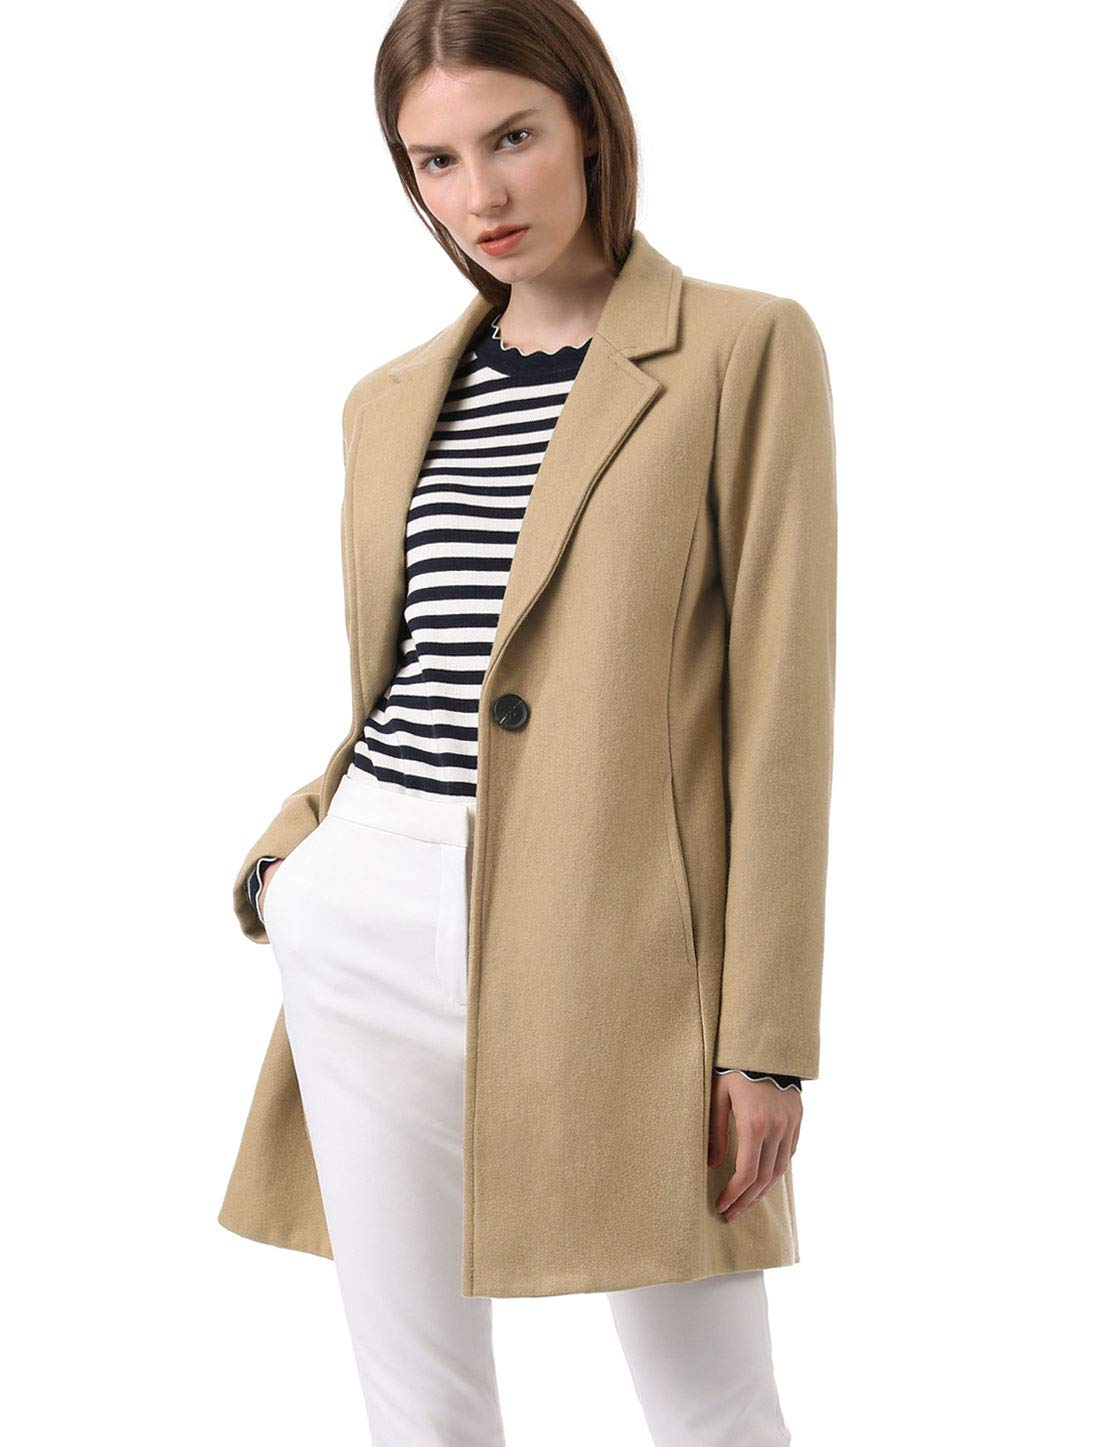 Allegra K Women's Notched Lapel Buttoned Trench Coat M Camel by Allegra K